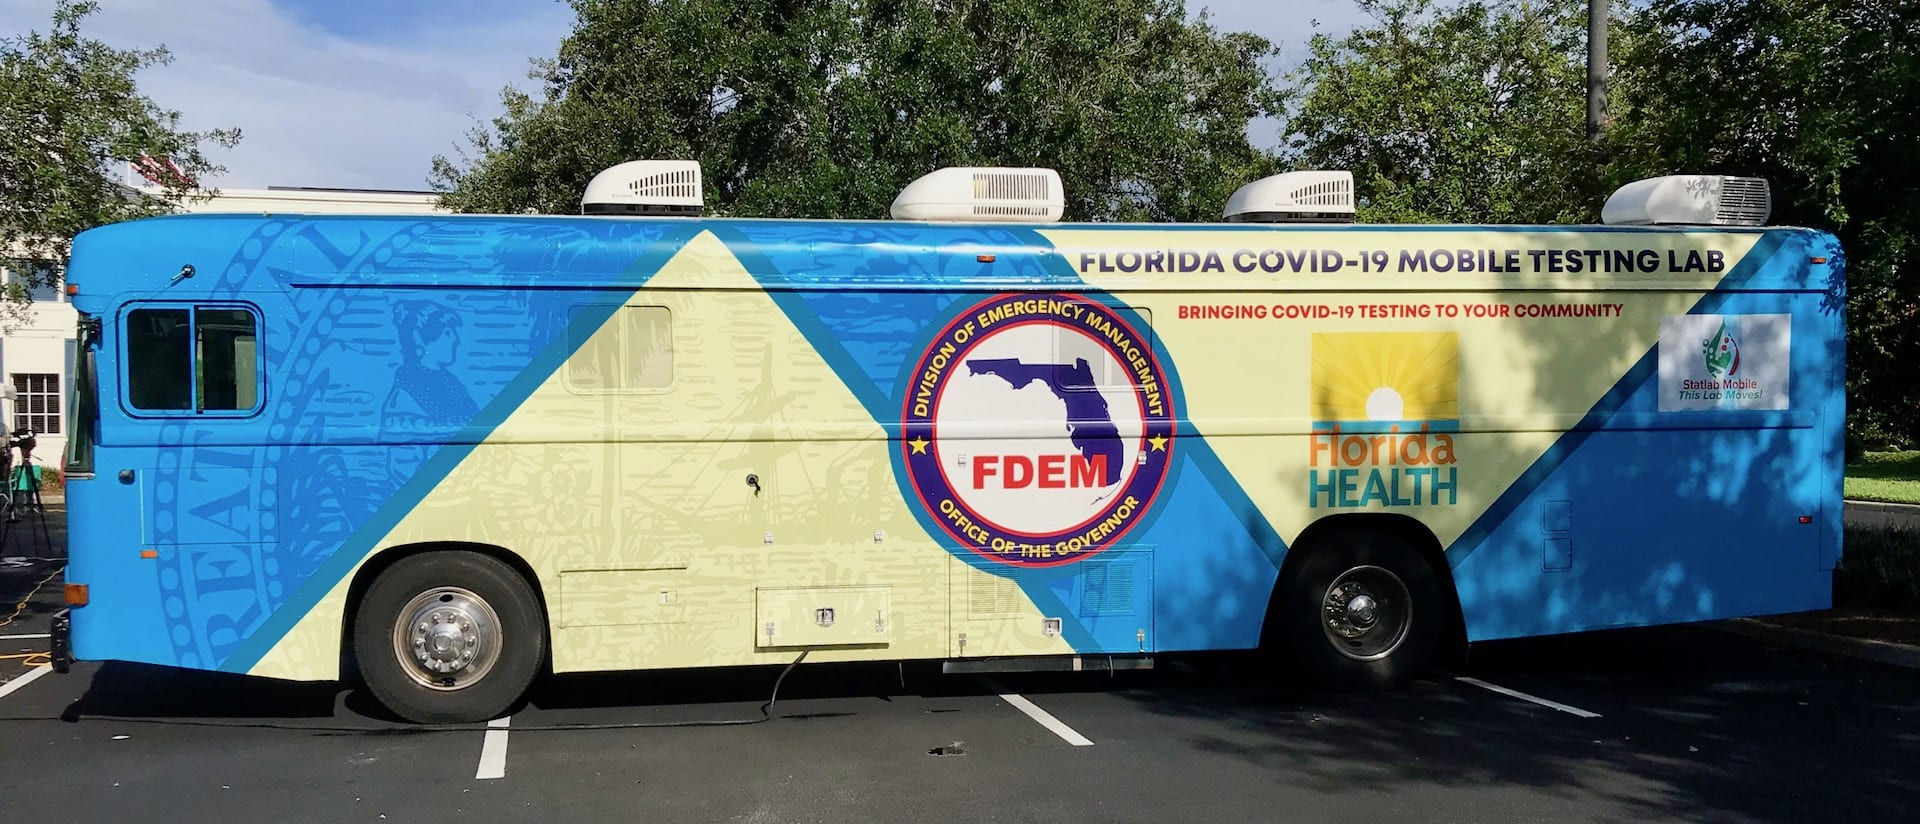 Picture of the COVID 19 Mobile Testing Bus Lab